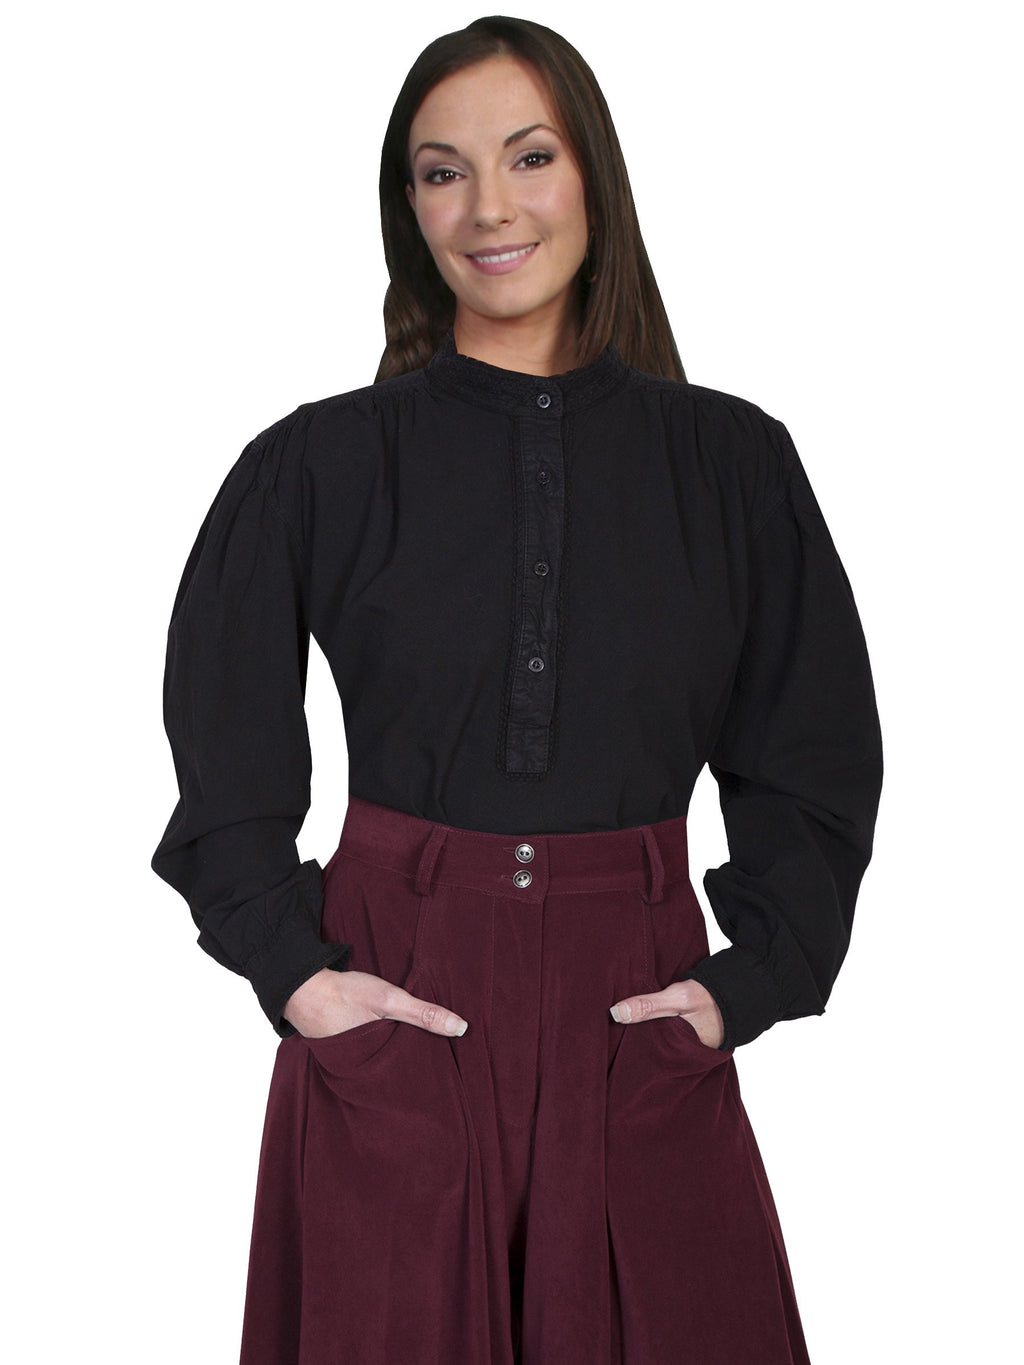 Ladies Black Cotton Old West Pull Over Blouse - shop-blanches-place